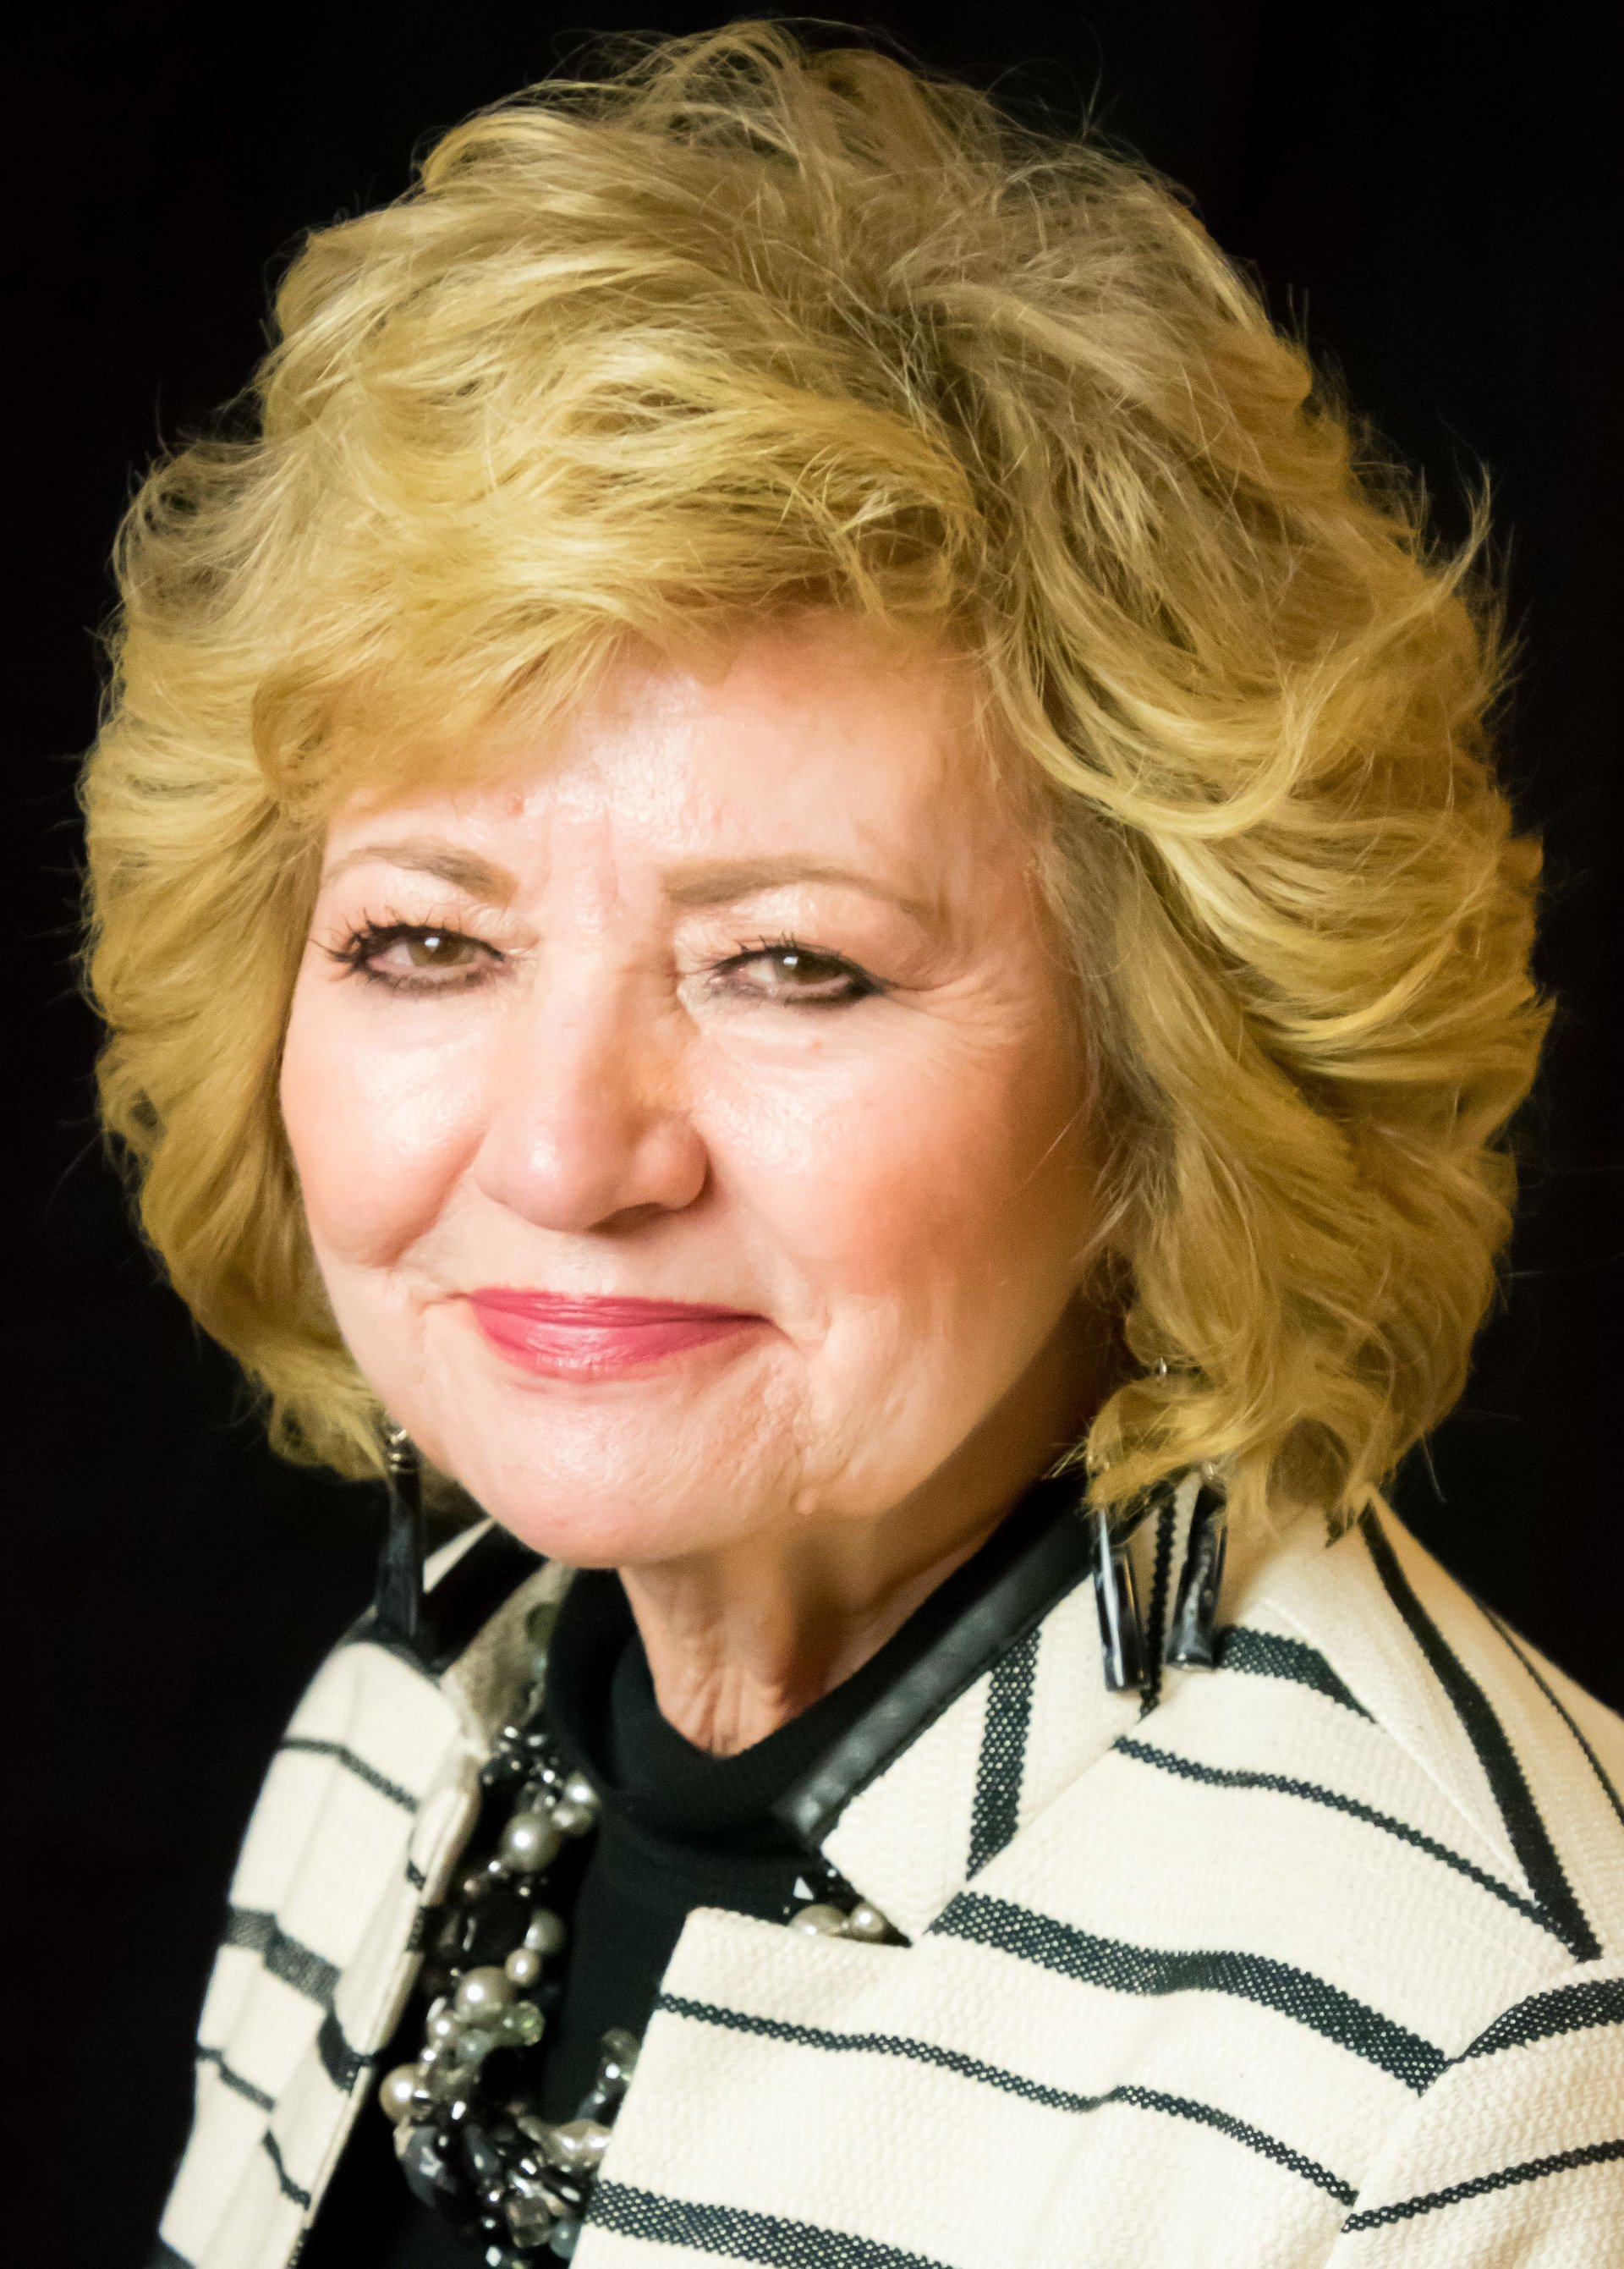 Dawn Anna Bradford Affiliates with the Prescott East Office of Coldwell Banker Realty